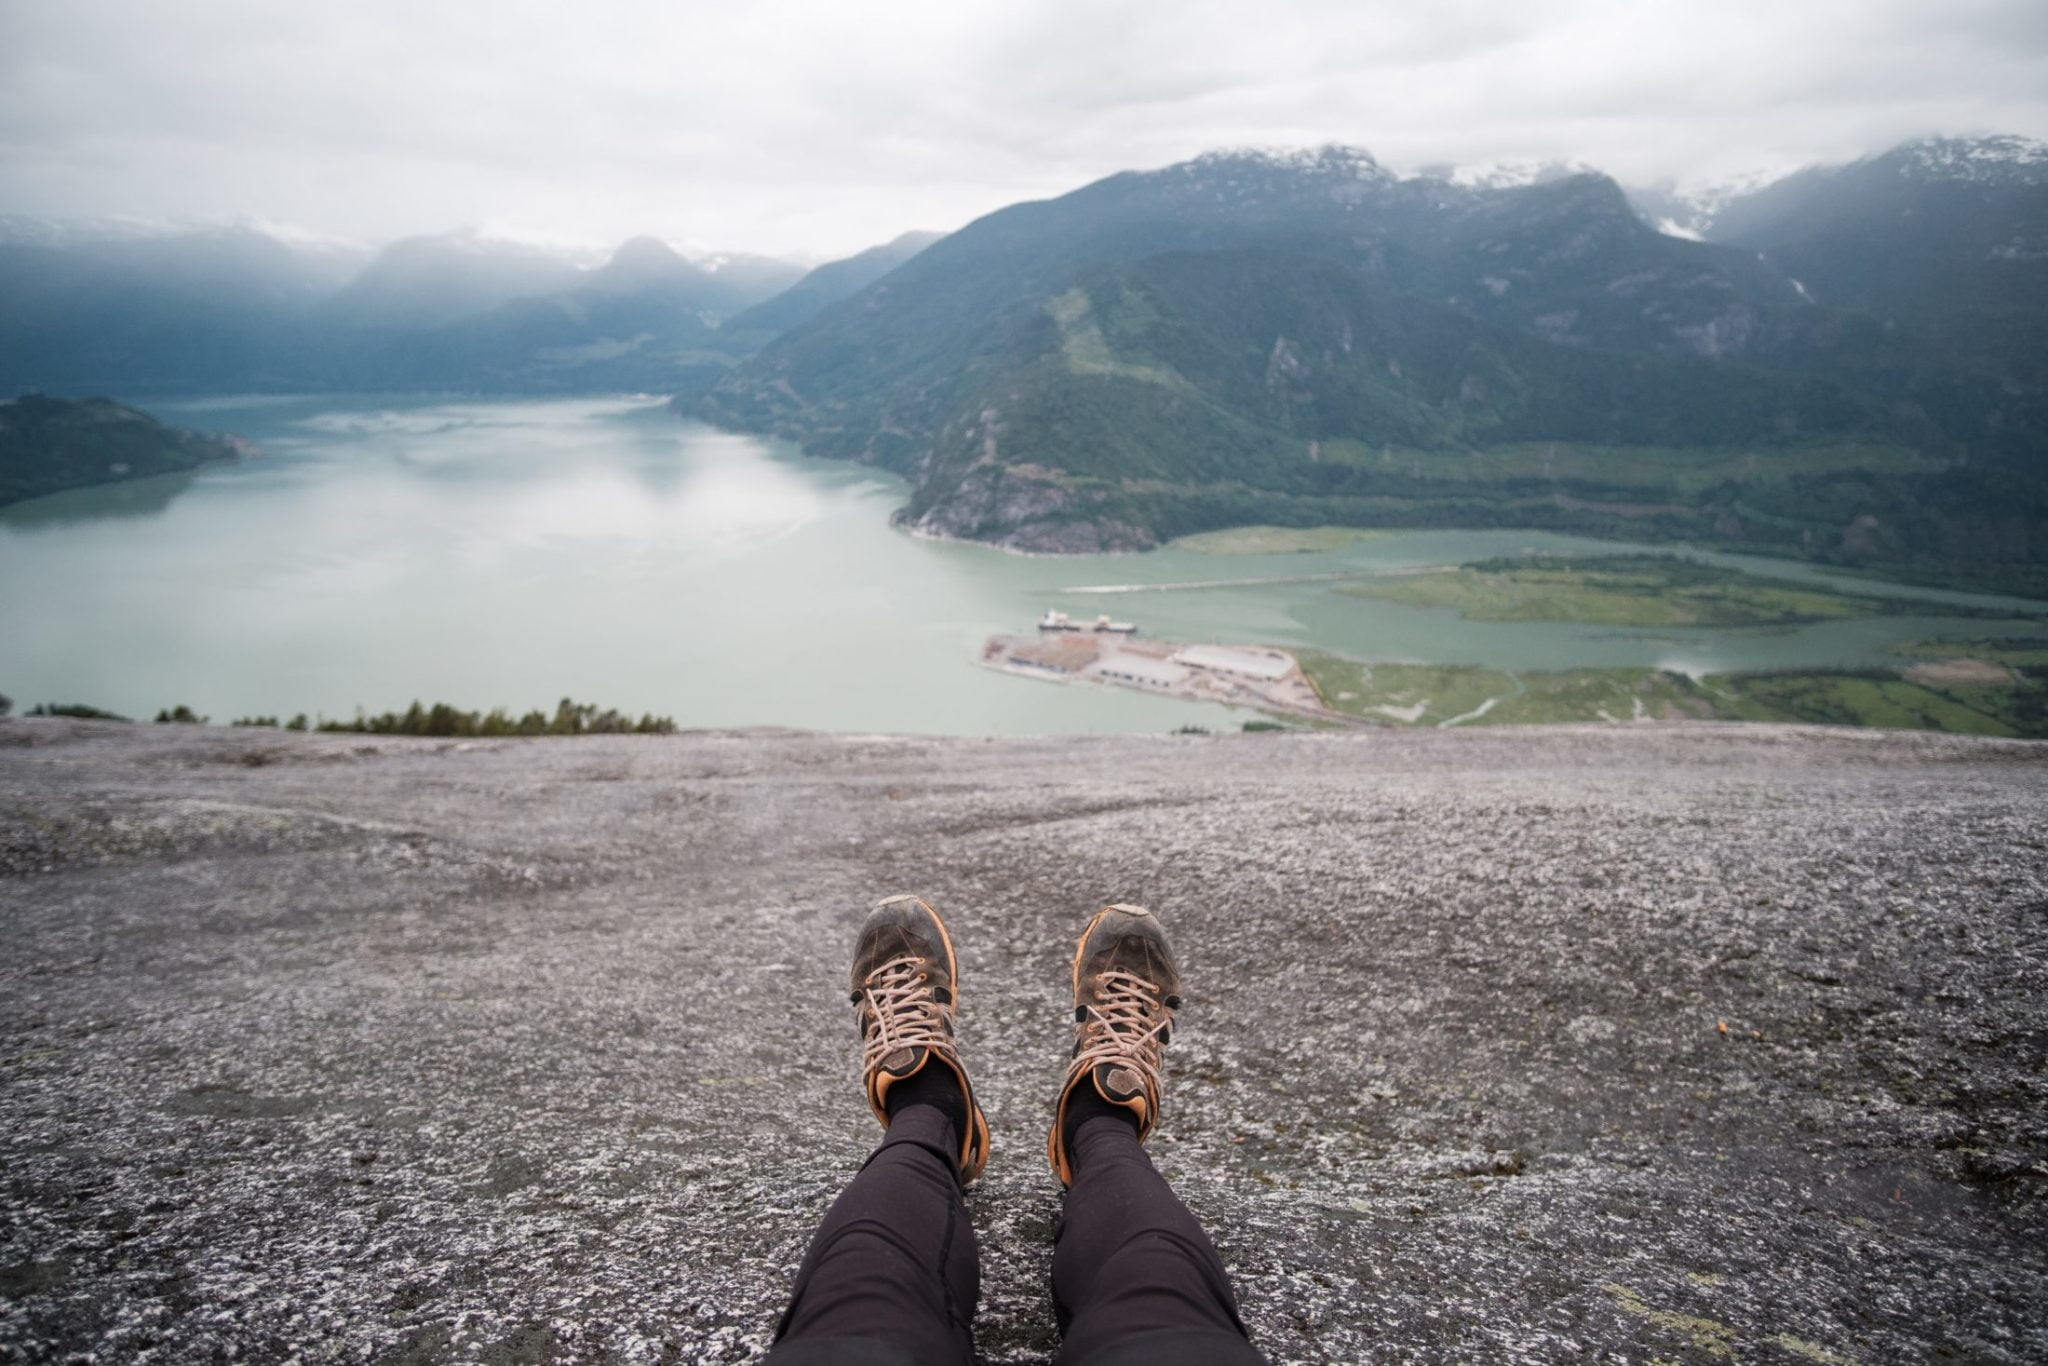 Person's Legs In Focus On Top Of Mountain